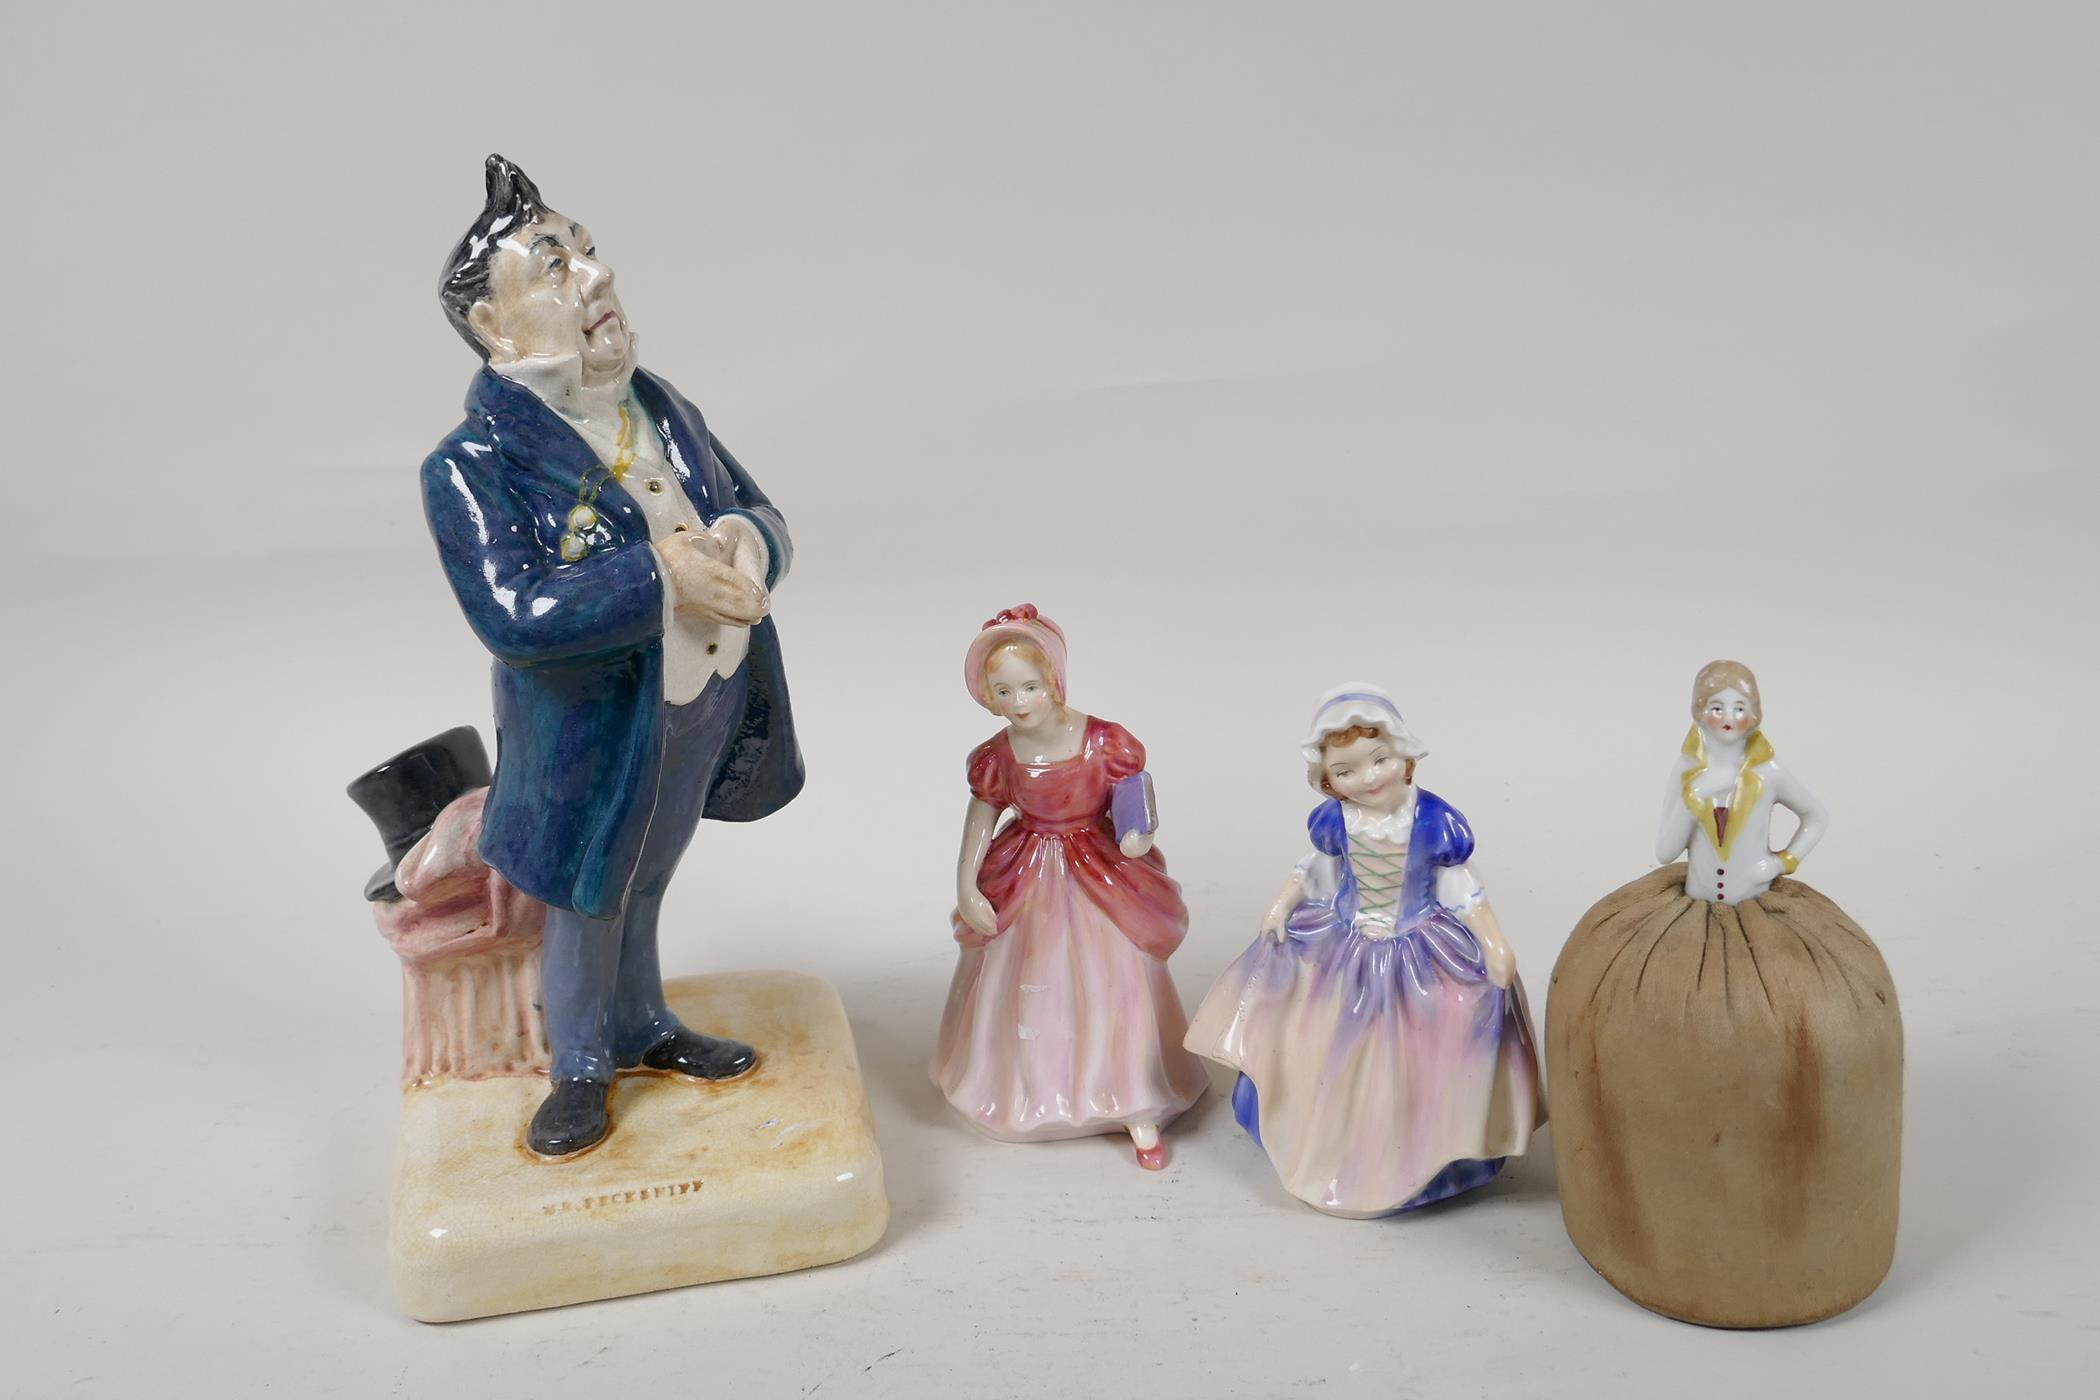 """A Bretby Pottery Dickens character, 'Mr Pecksniff', 9"""" high, together with a Paragon pottery figure,"""